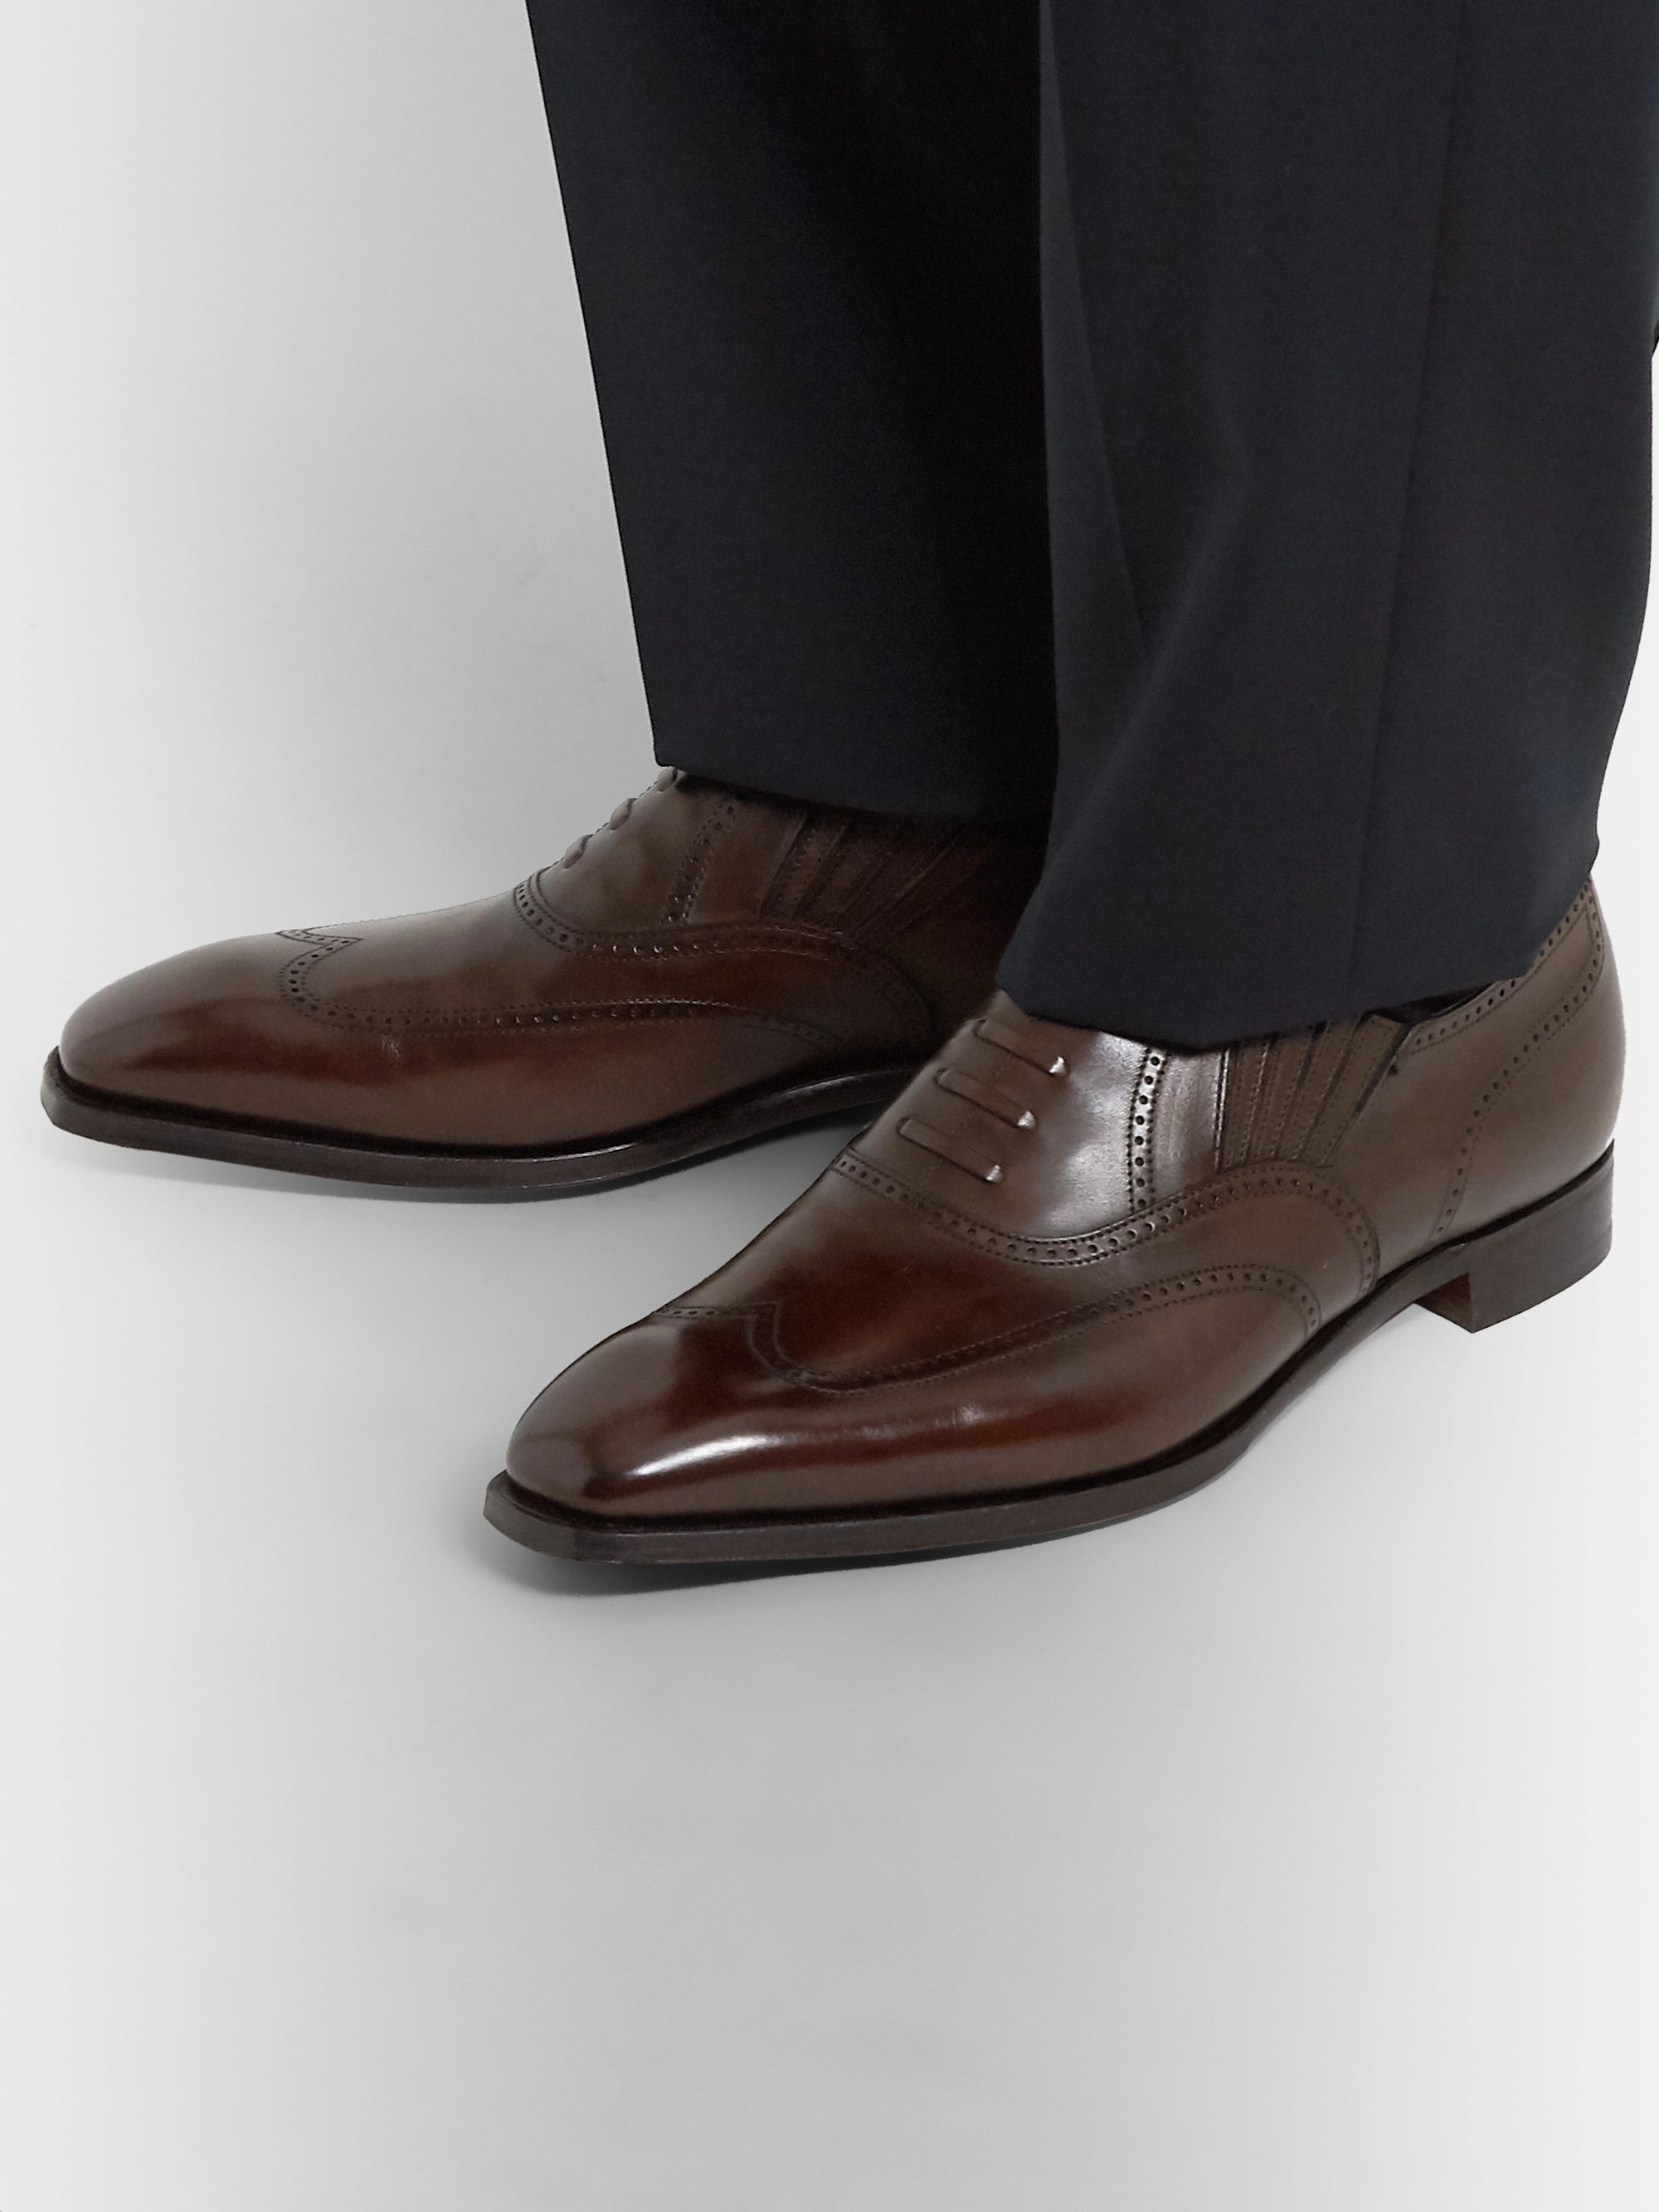 George Cleverley Winston Leather Oxford Brogues